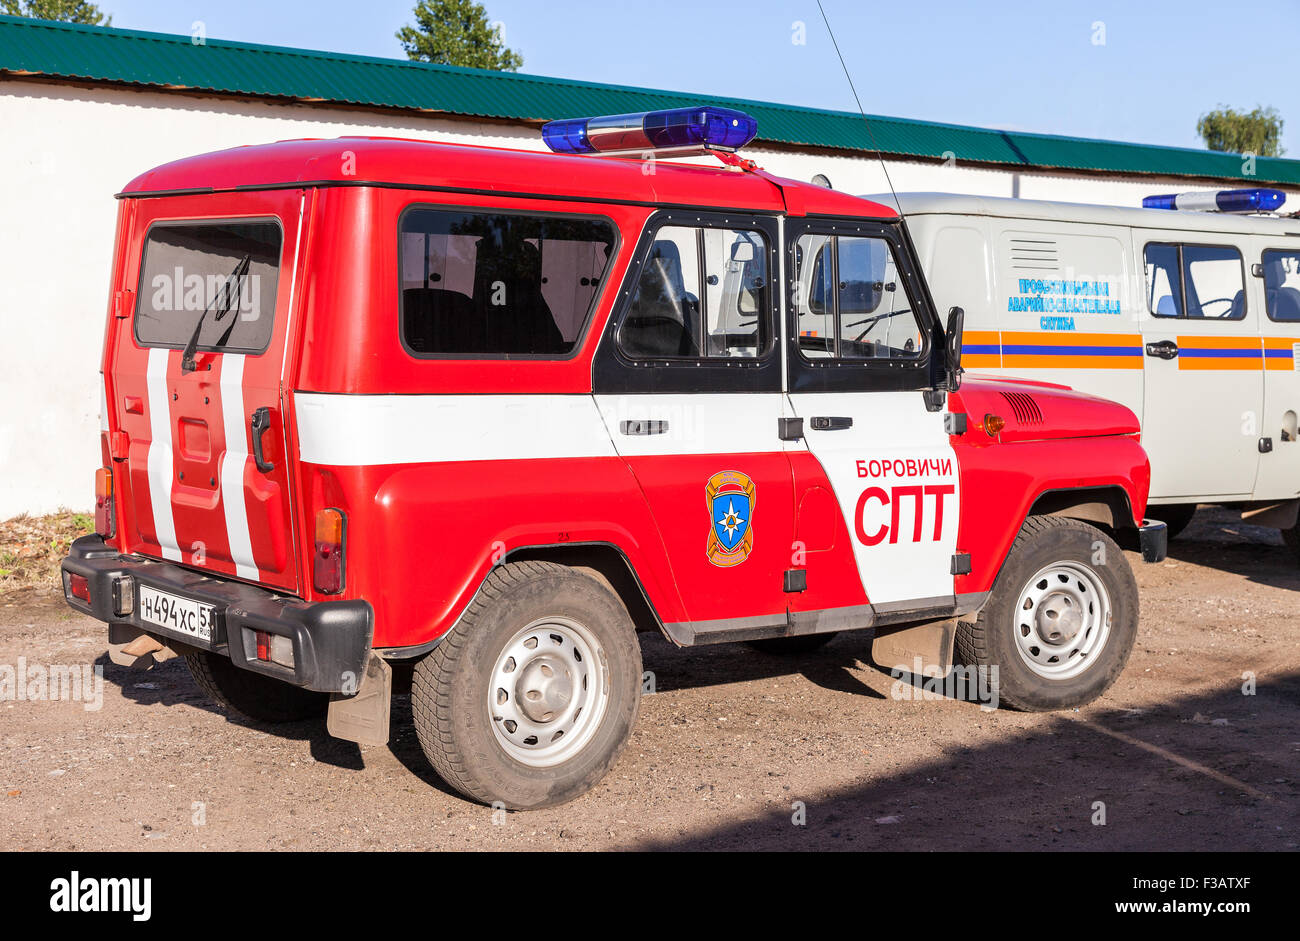 Rescue car parked up in the street. Text on russian: 'Professional emergency rescue service' - Stock Image